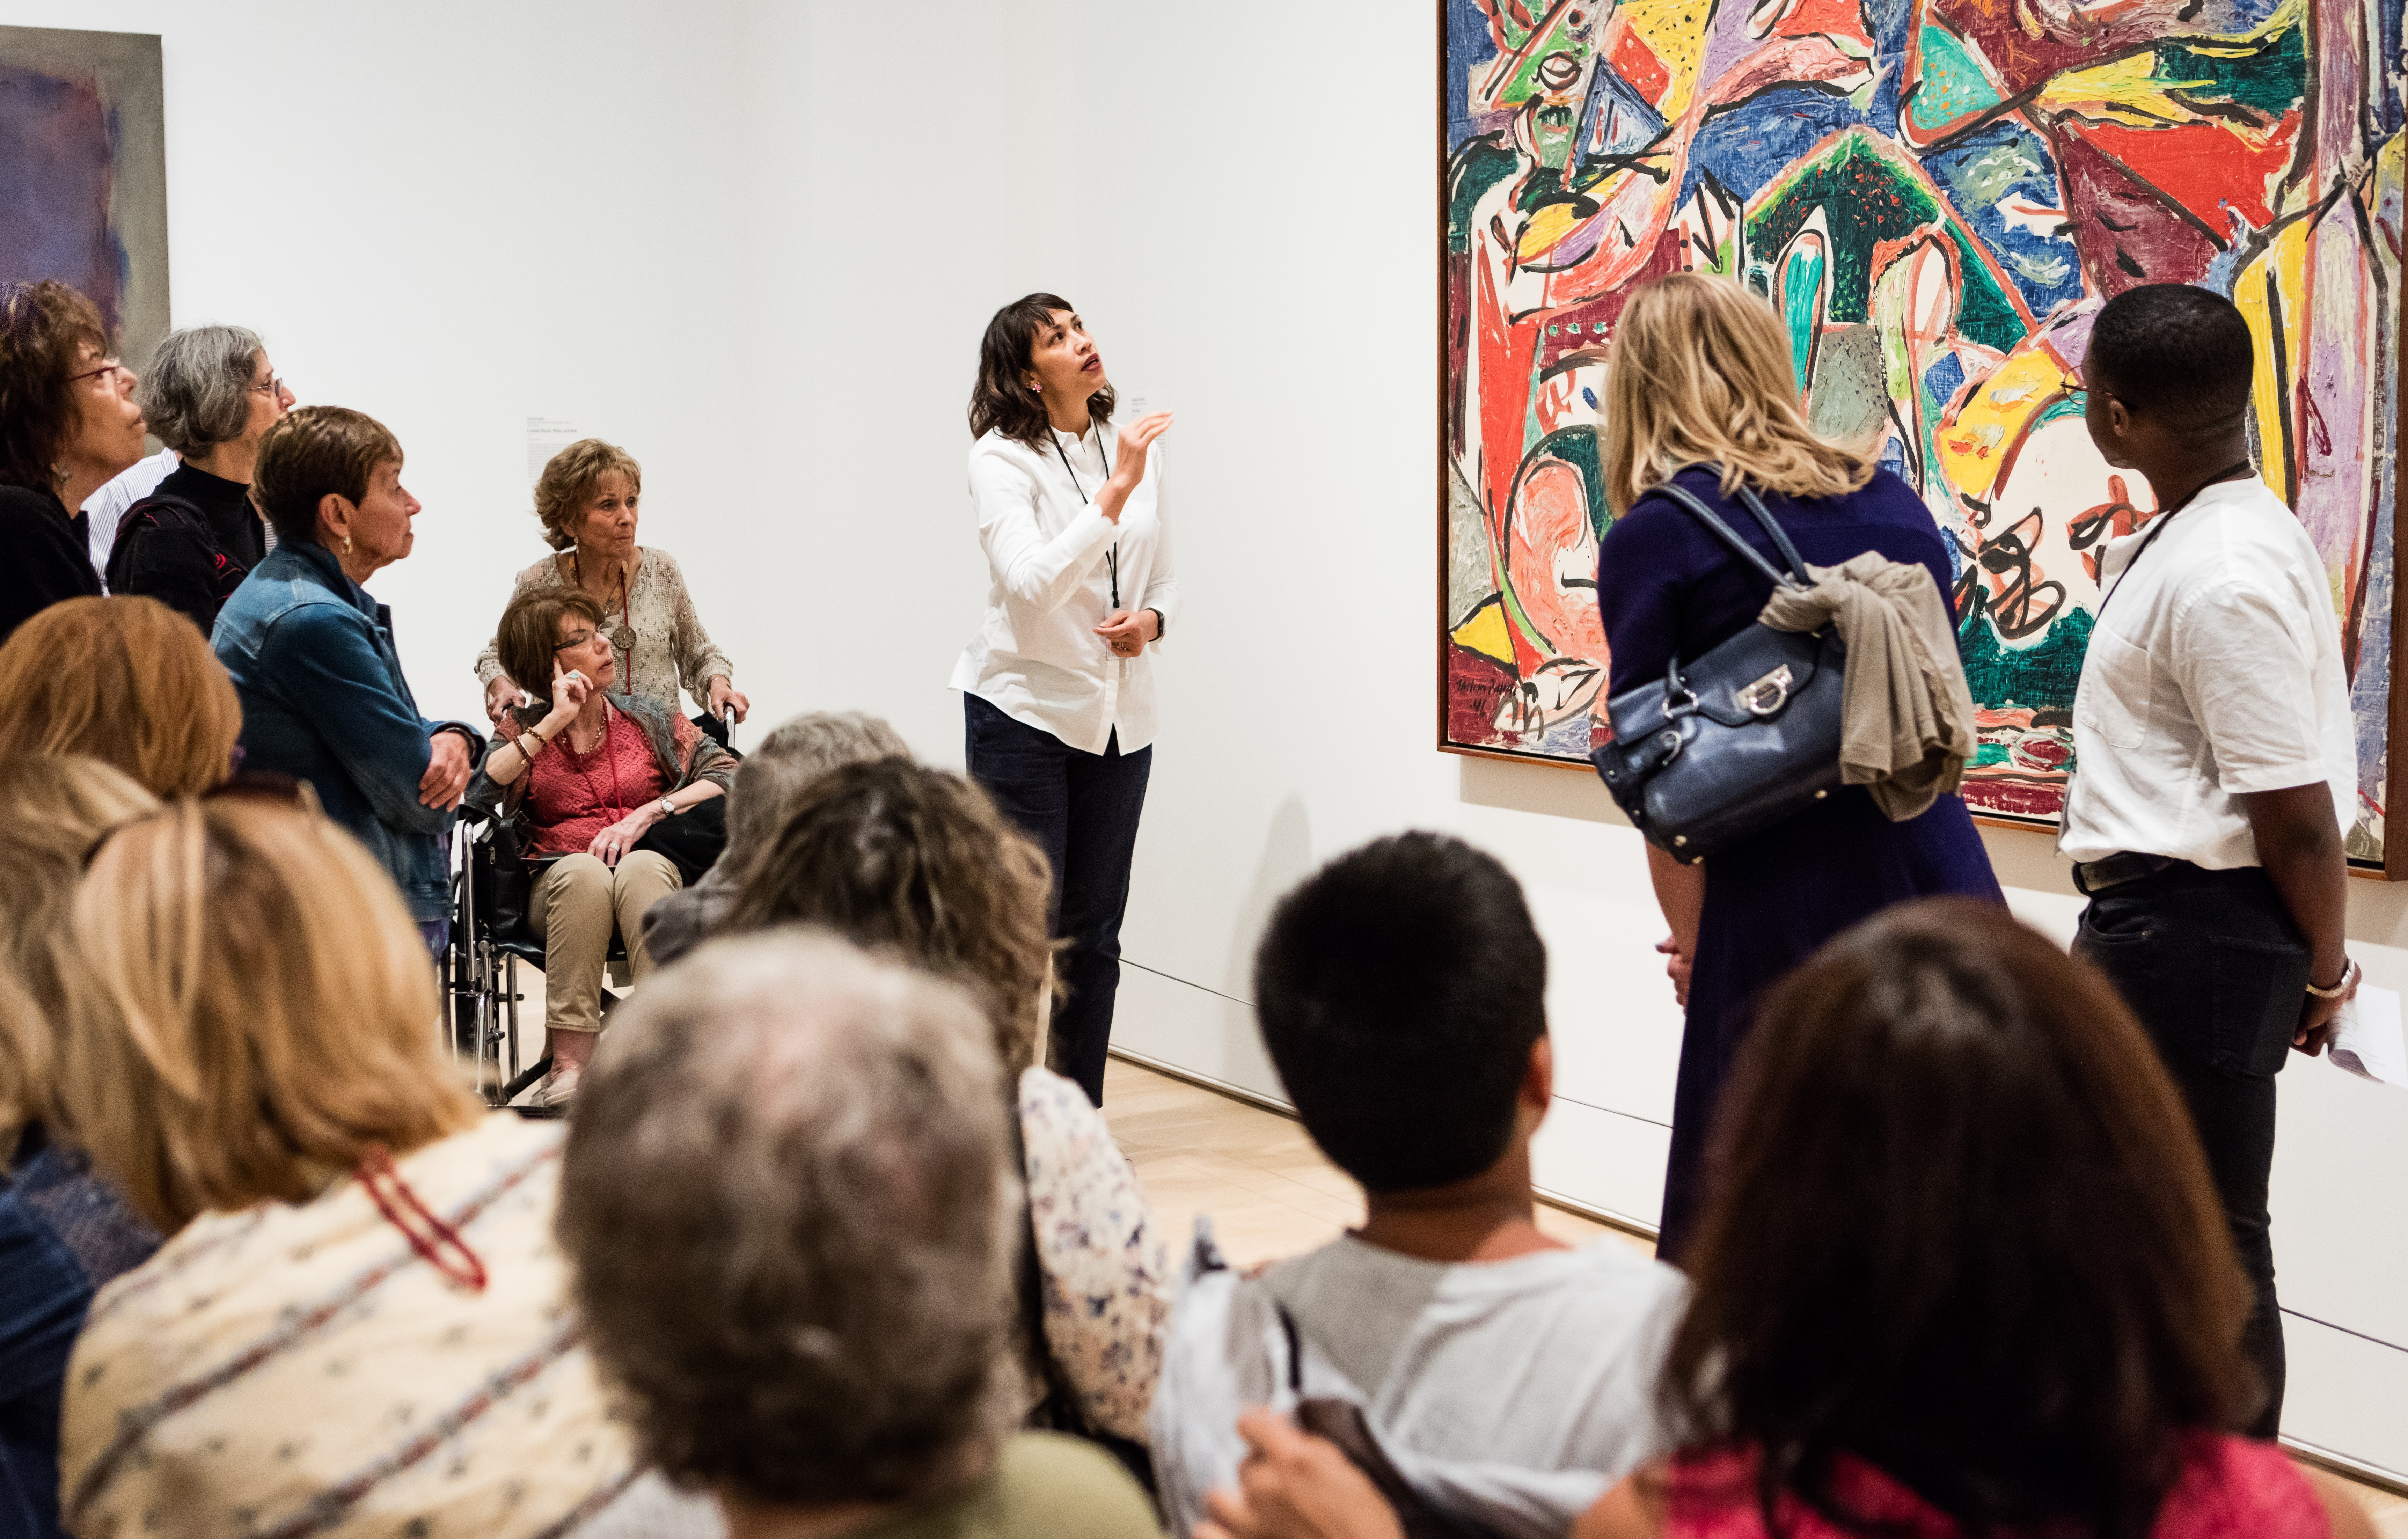 A staff person speaks about a modern painting in front of a large group of people.